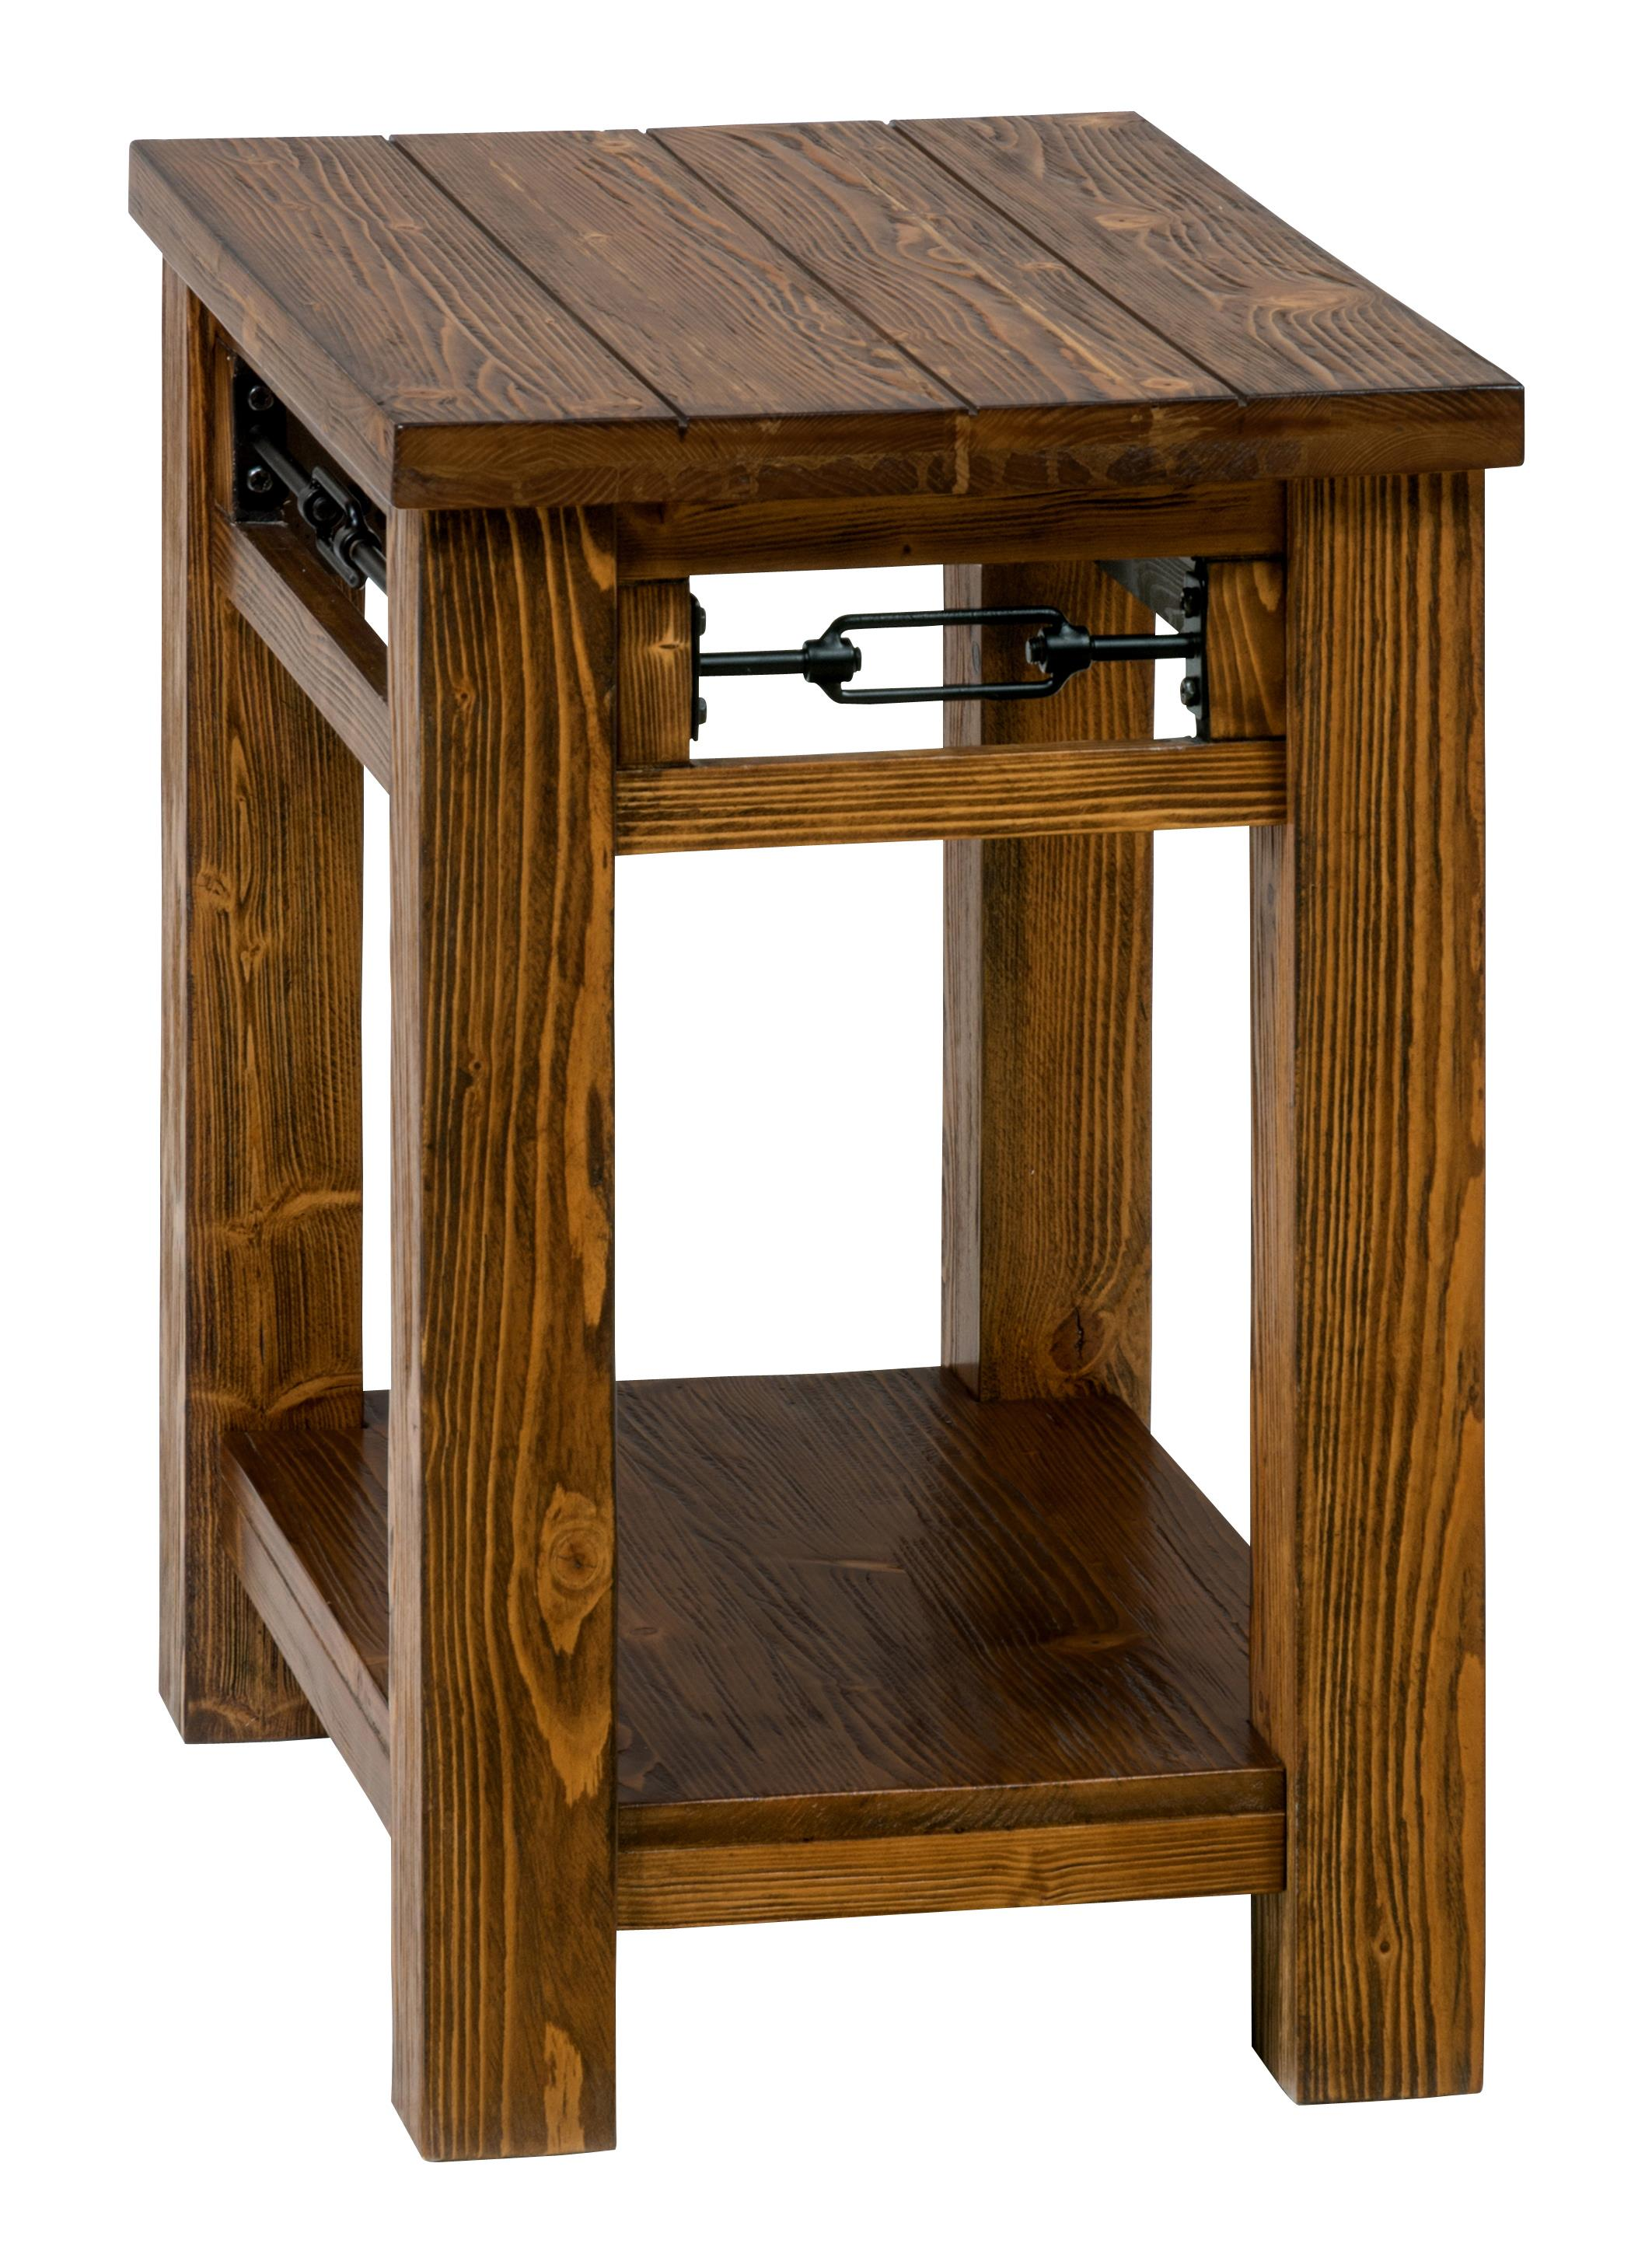 Jofran San Marcos 463 7 Rectangle Chairside Table Made Of Solid Pine Furniture And